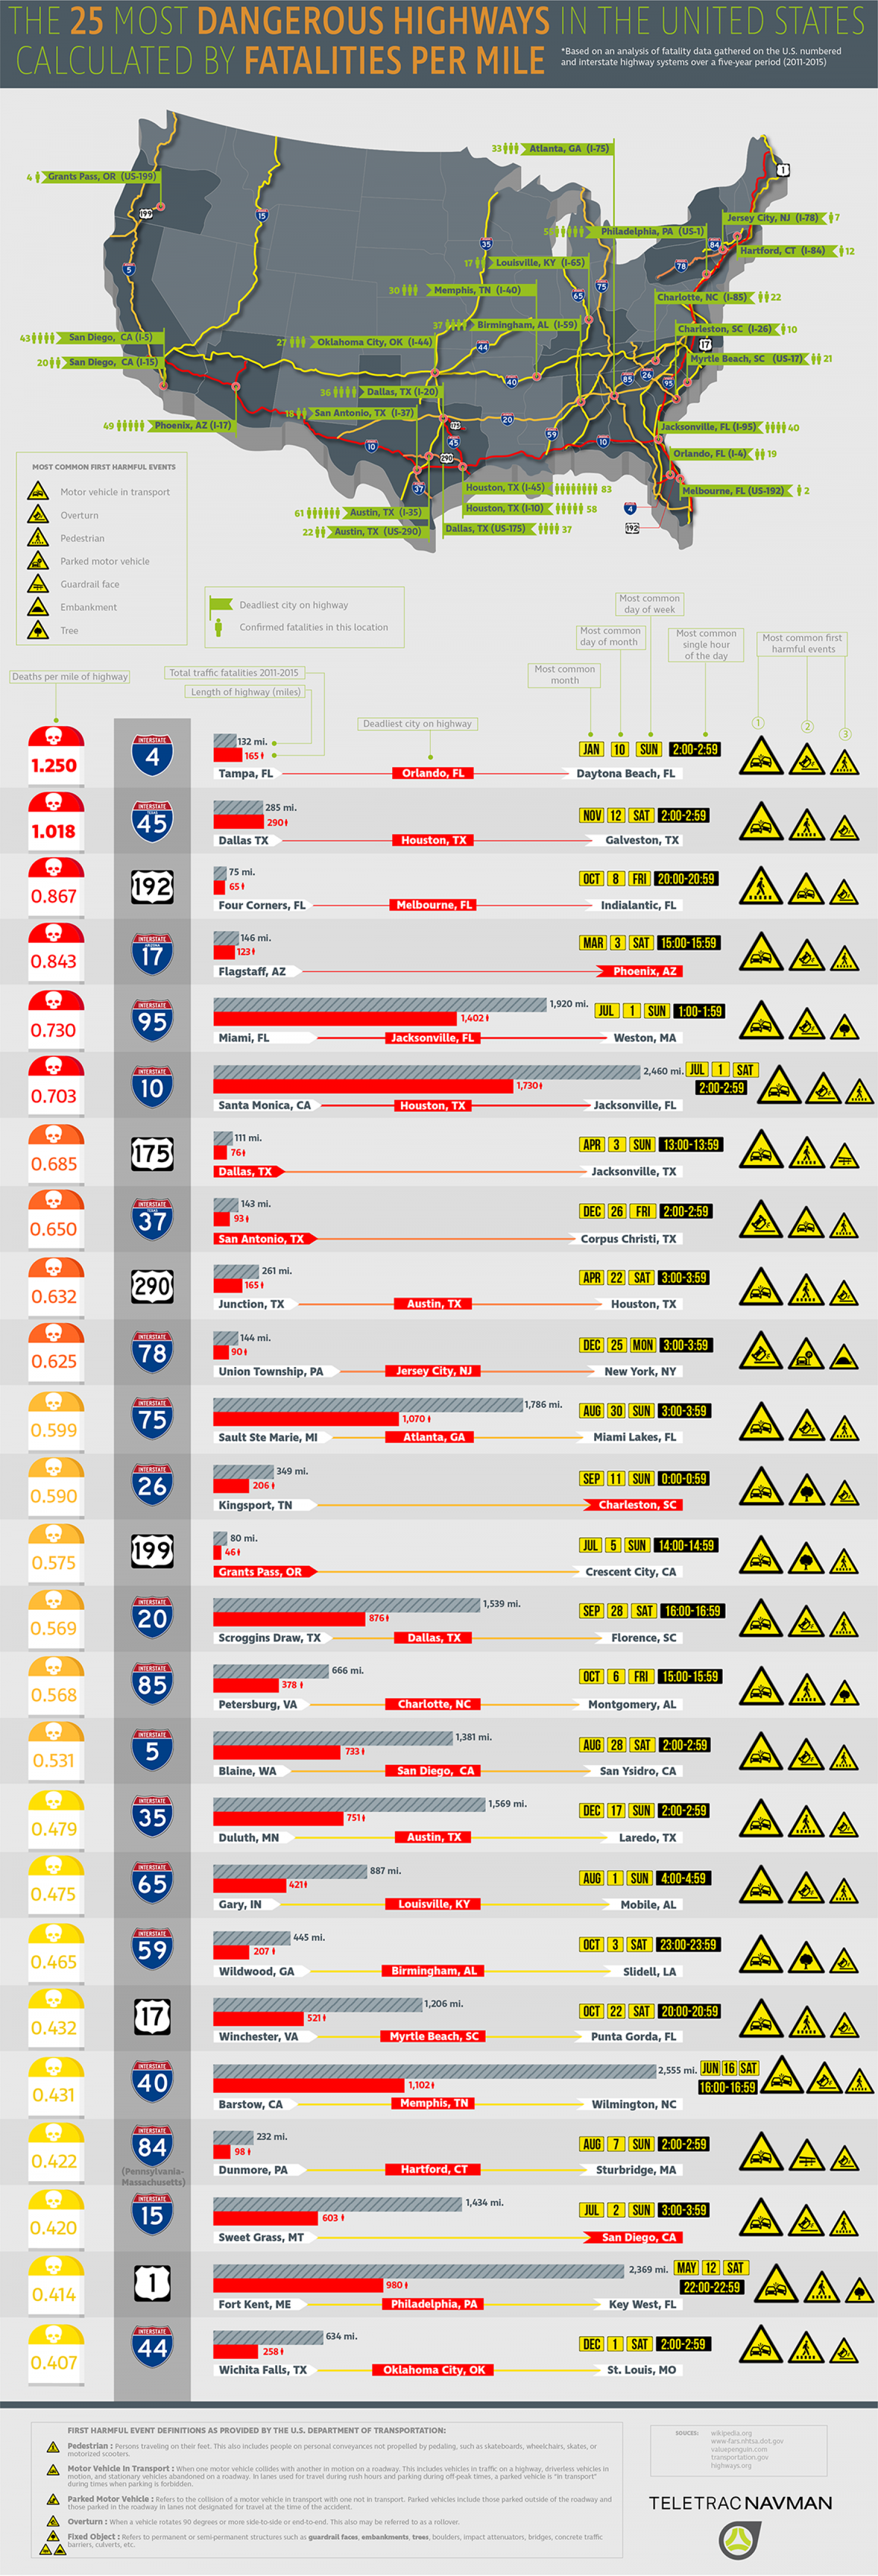 The 25 Most Dangerous Highways in the United States Calculated by Fatalities Per Mile Infographic